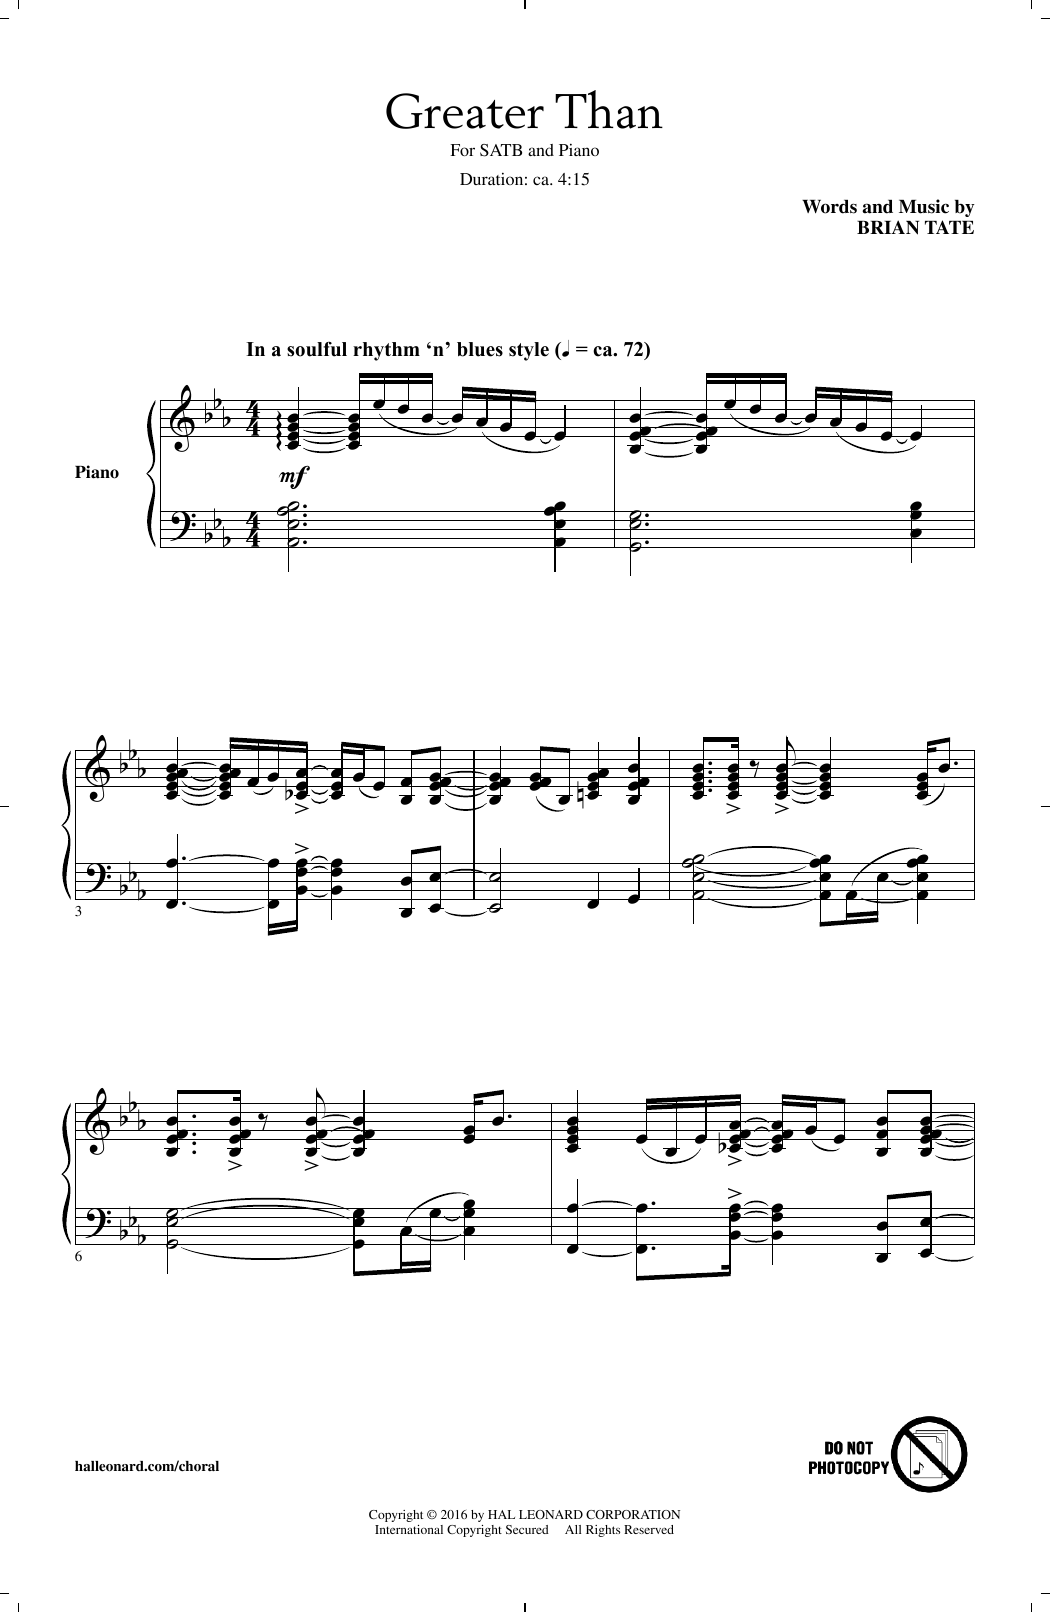 Brian Tate Greater Than sheet music notes and chords. Download Printable PDF.